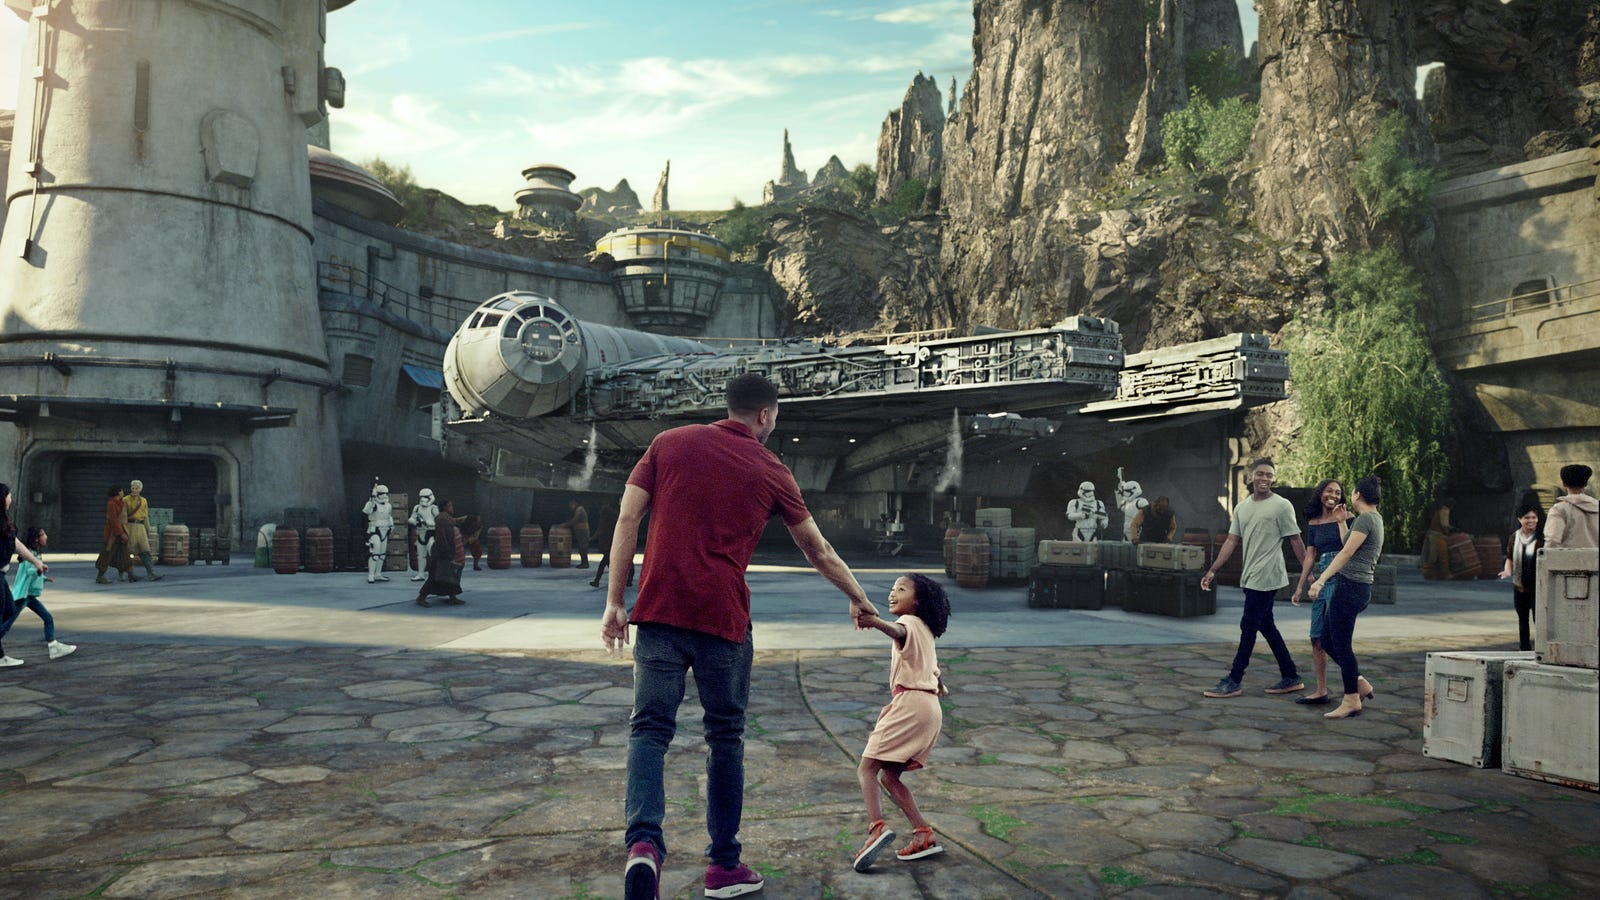 We've Been to Star Wars: Galaxy's Edge and Life Will Never Be the Same